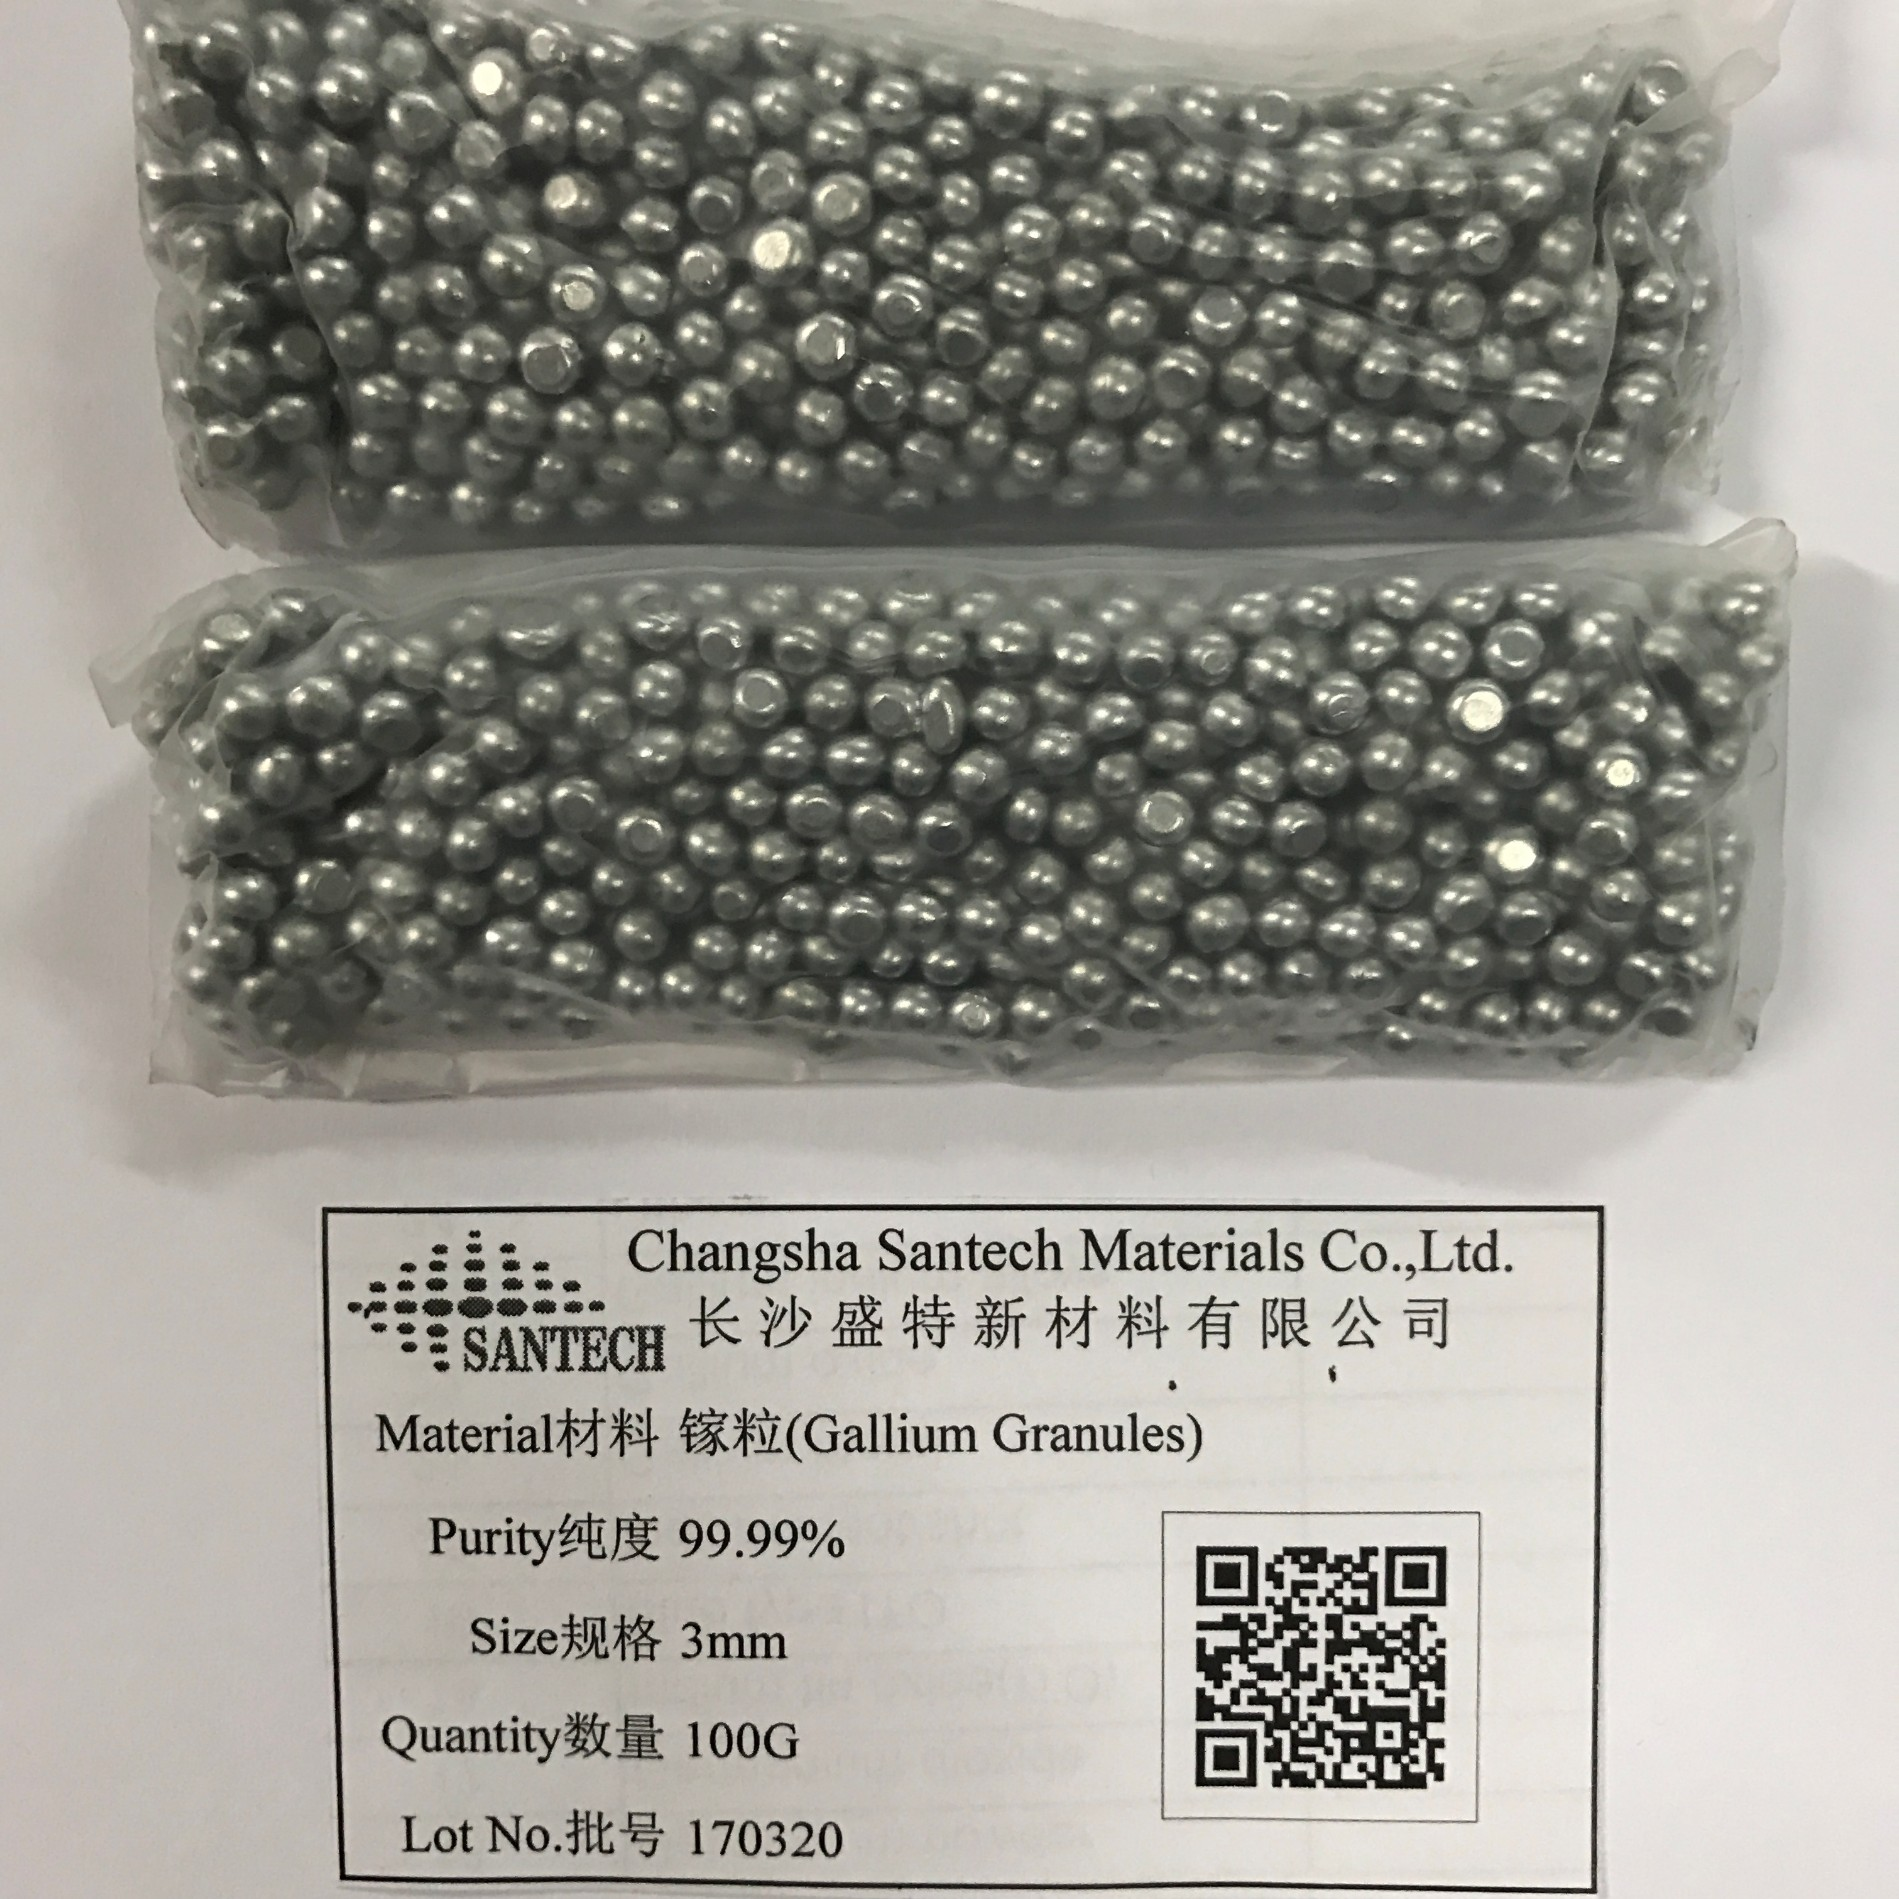 High quality Gallium Granule Quotes,China Gallium Granule Factory,Gallium Granule Purchasing